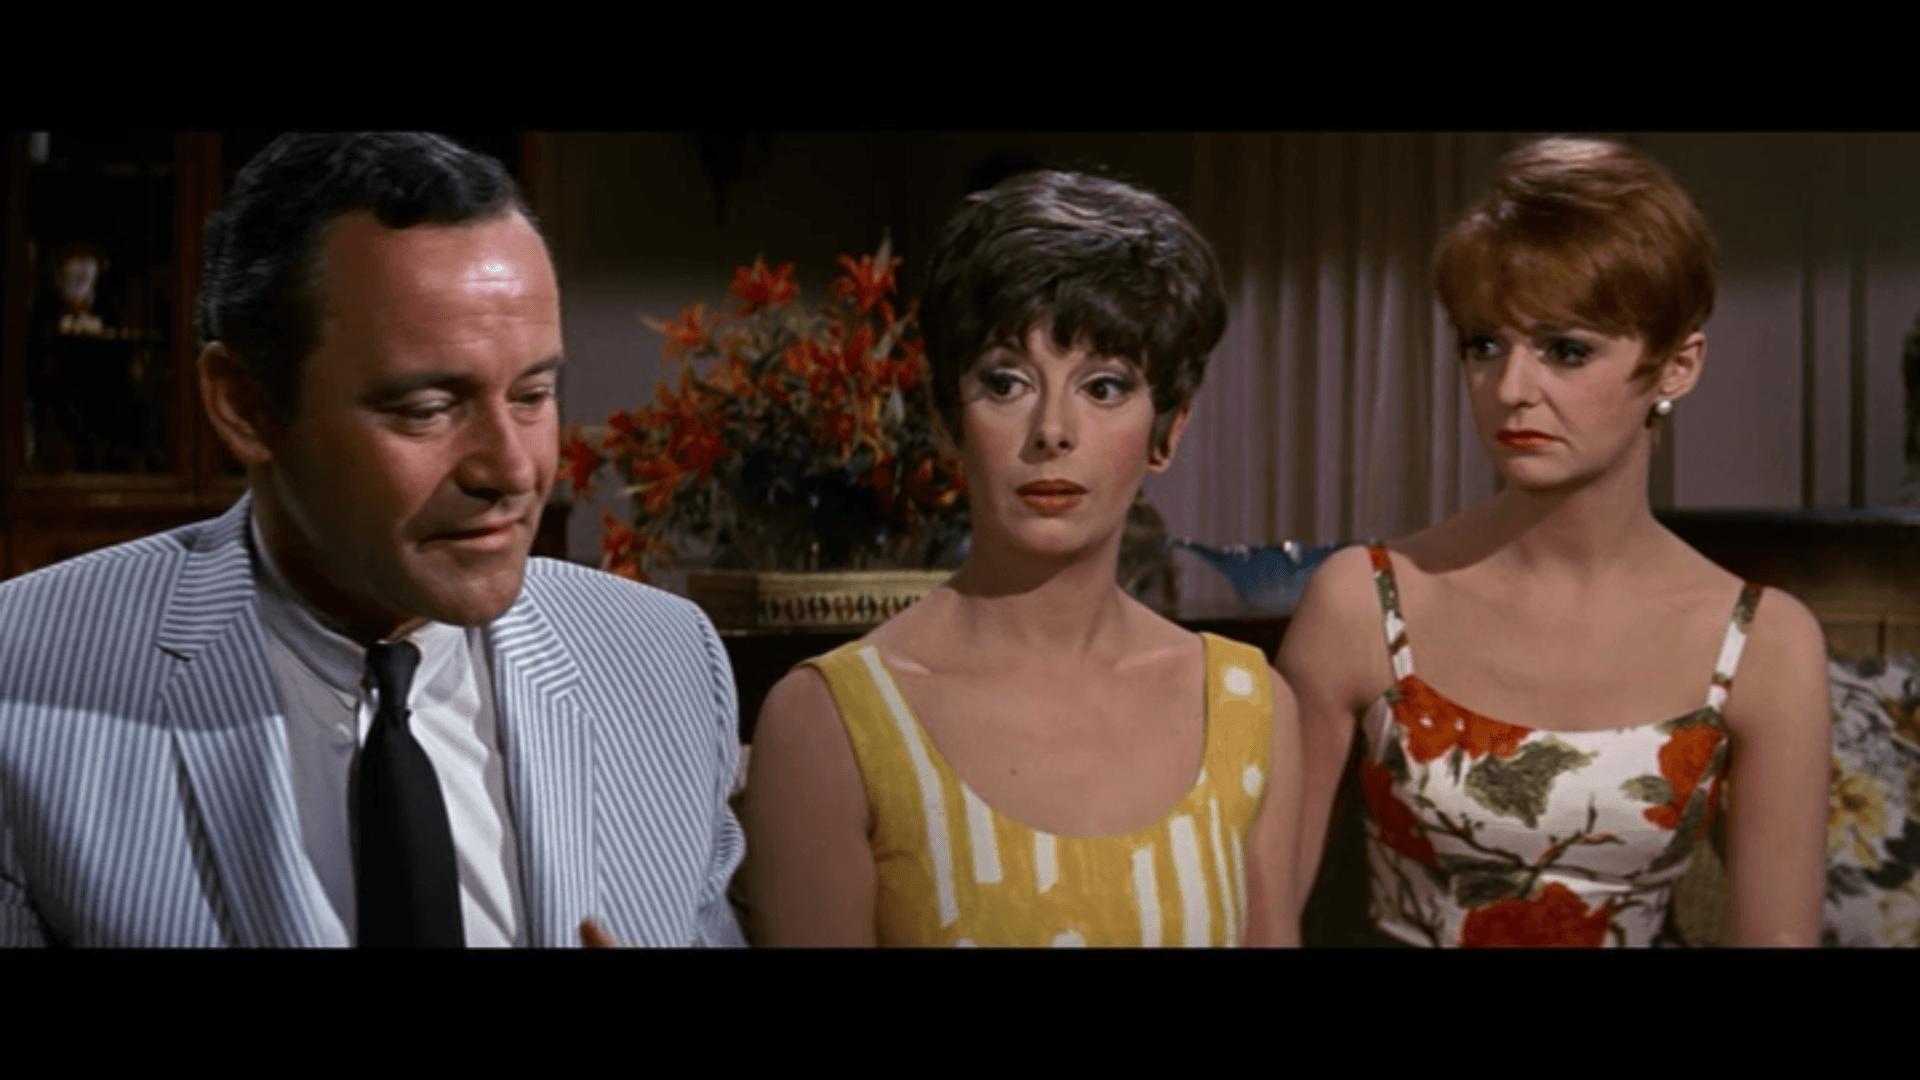 Jack Lemmon, Monica Evans, and Carole Shelley in The Odd Couple (1968)